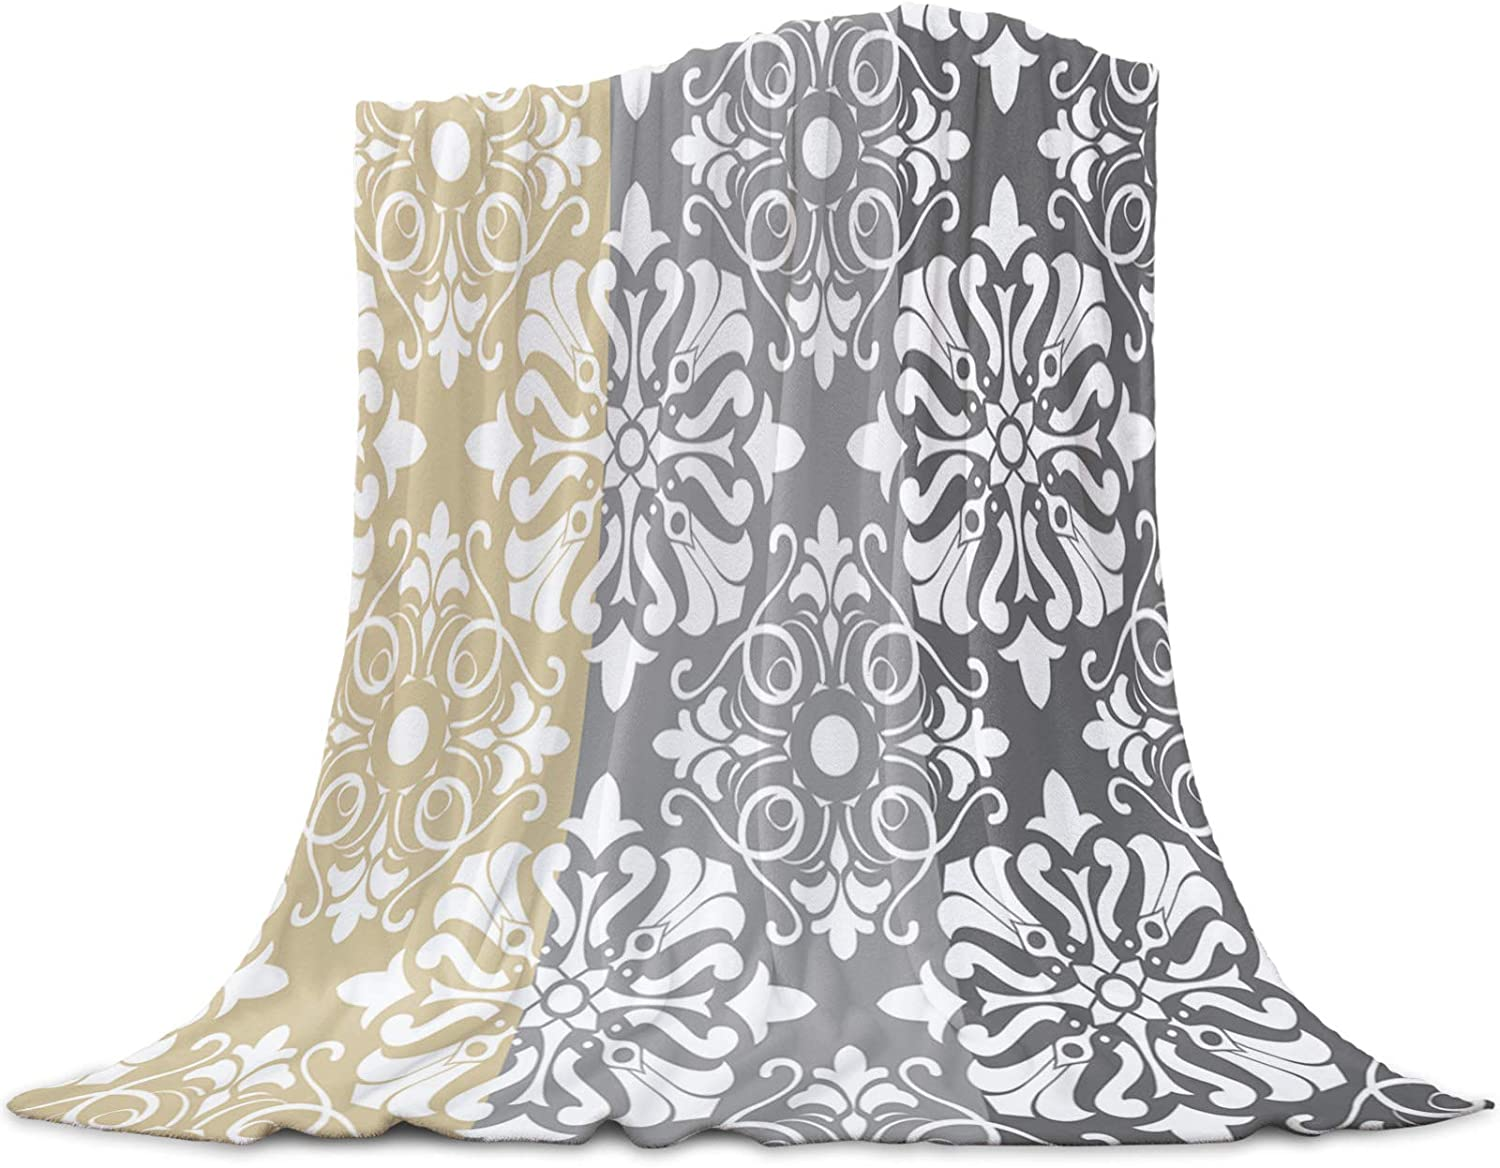 Interhear Bed Ranking TOP2 Throws Blankets Elegant Floral Fleece Lig sold out Flannel